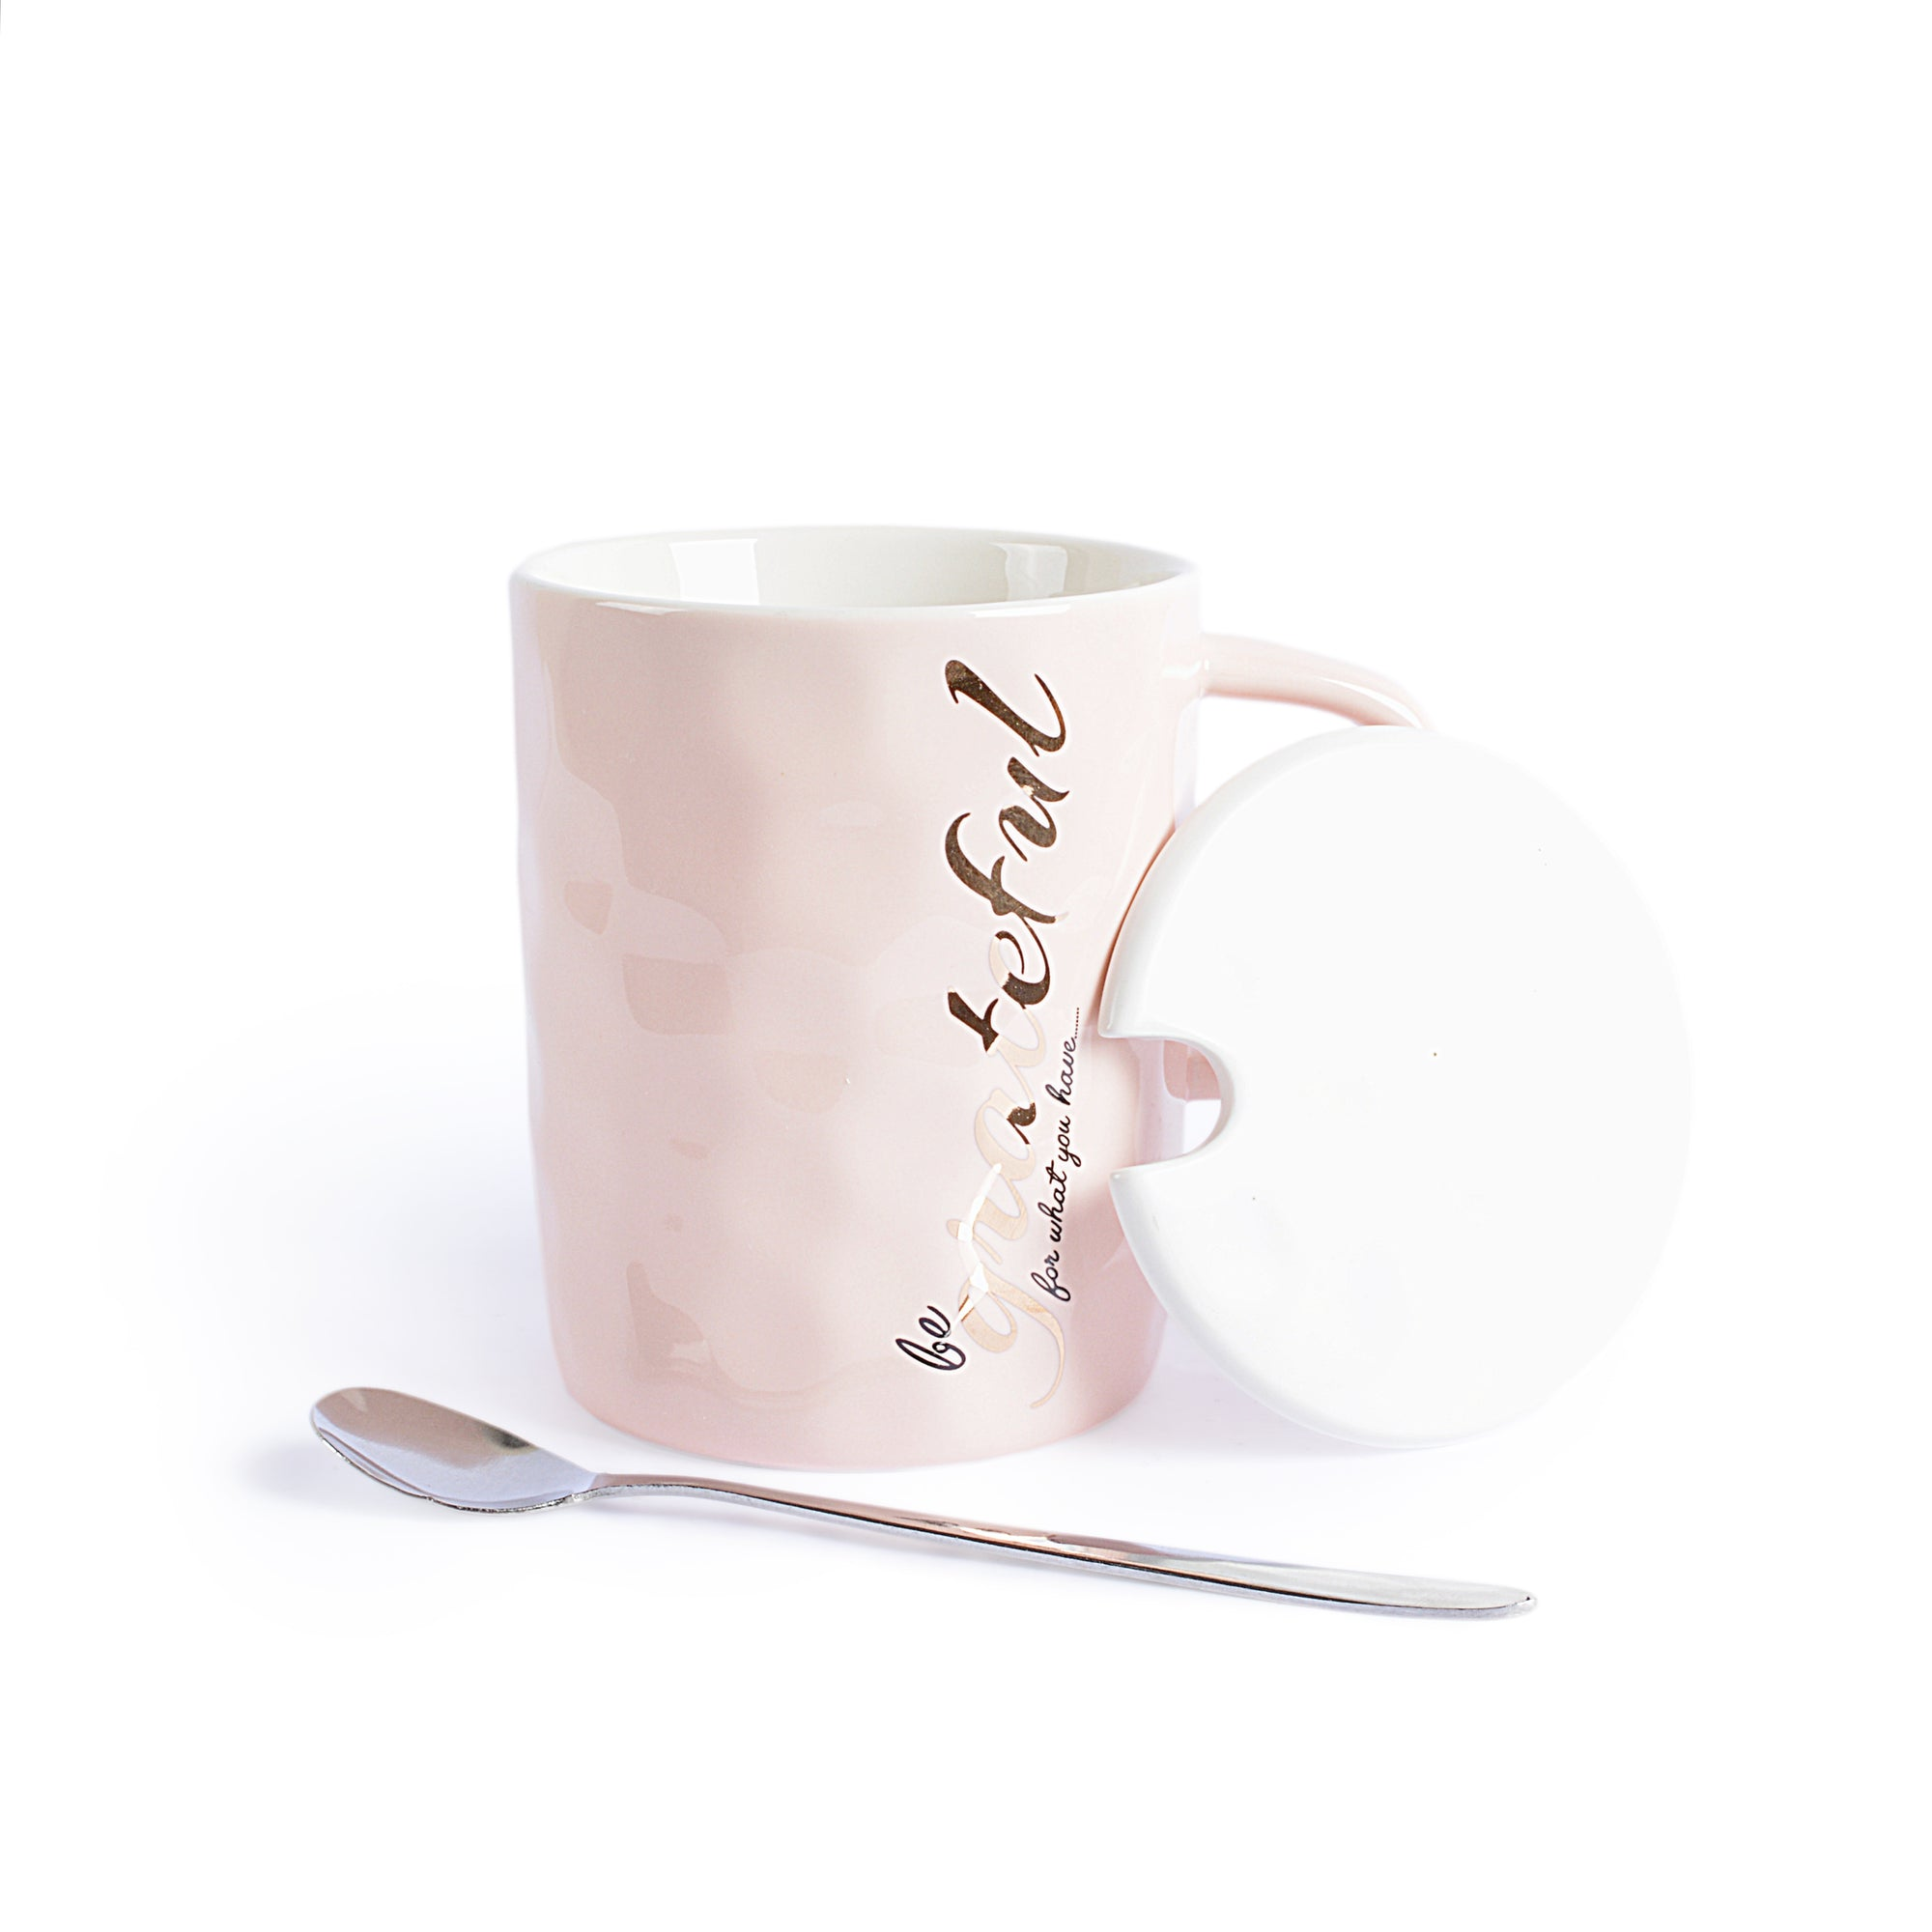 Grateful Design Ceramic Mug With Lid & Spoon